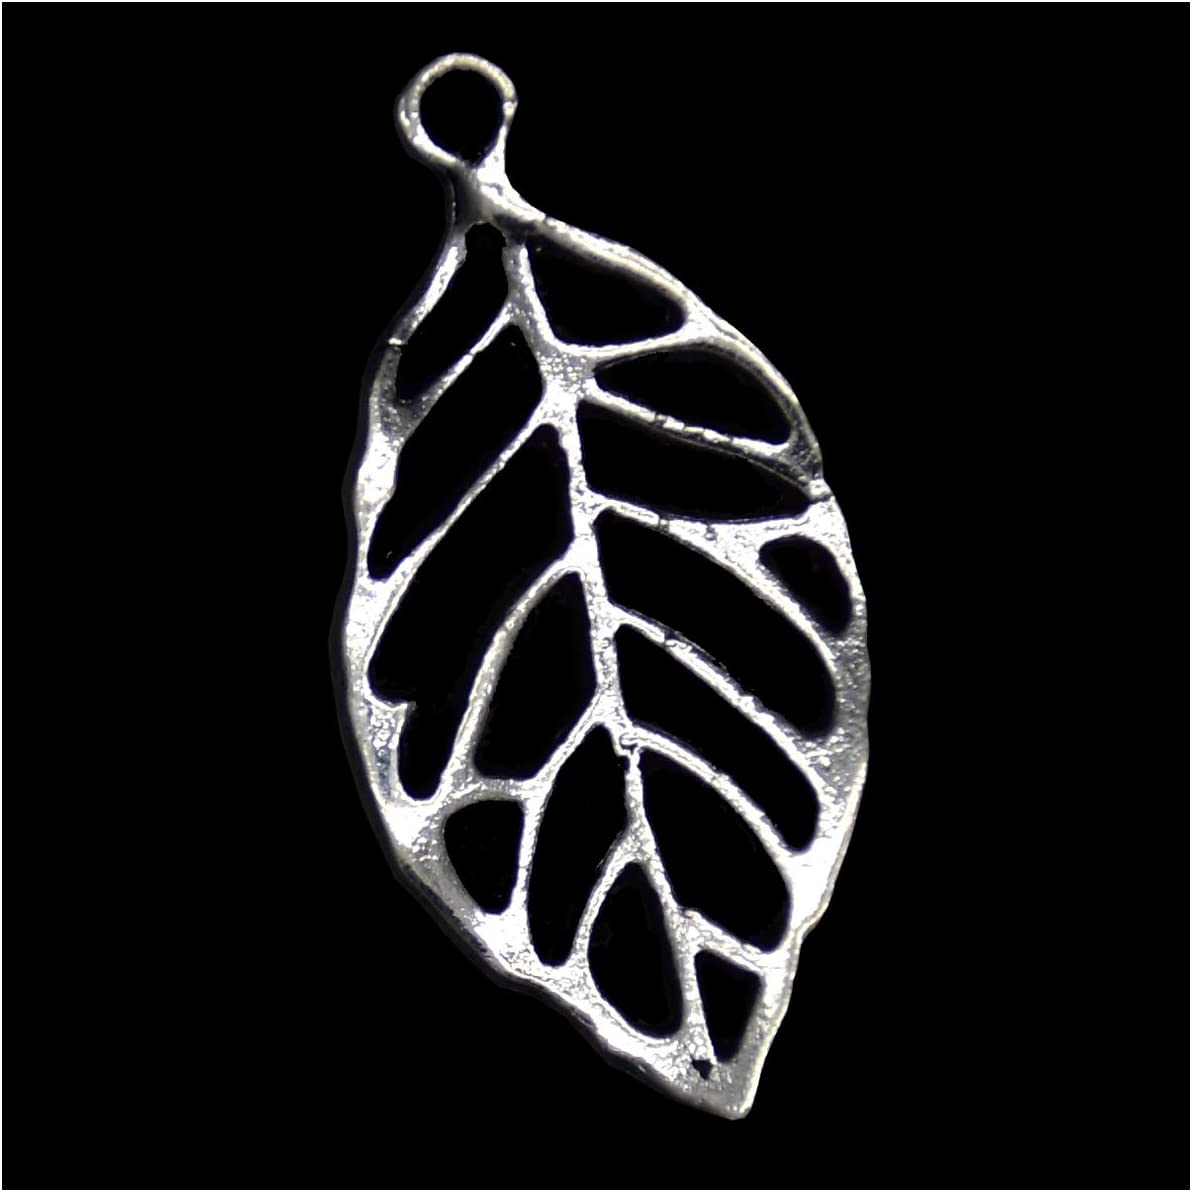 Pack of 80 Hollow Leaves Charms Pendants Silver Craft Supplies for Jewelry Making Tibetan Accessories for Bracelets Necklace DIY